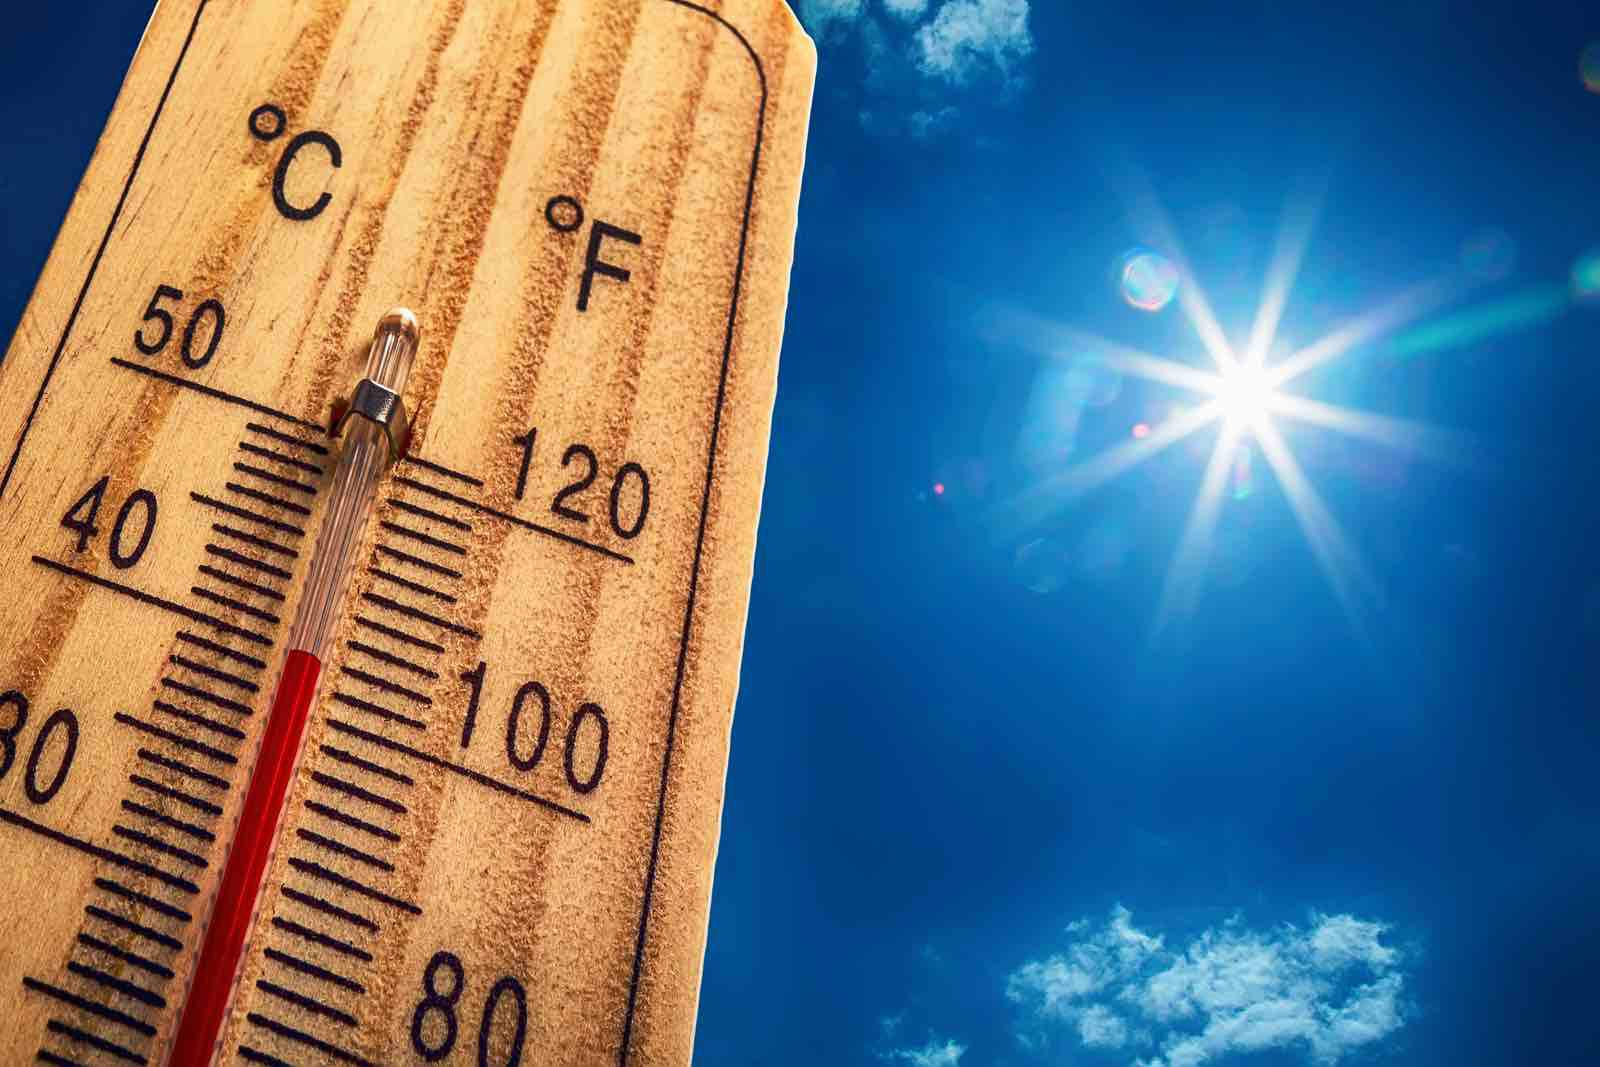 high temperatures that may cause Cypress roof damage